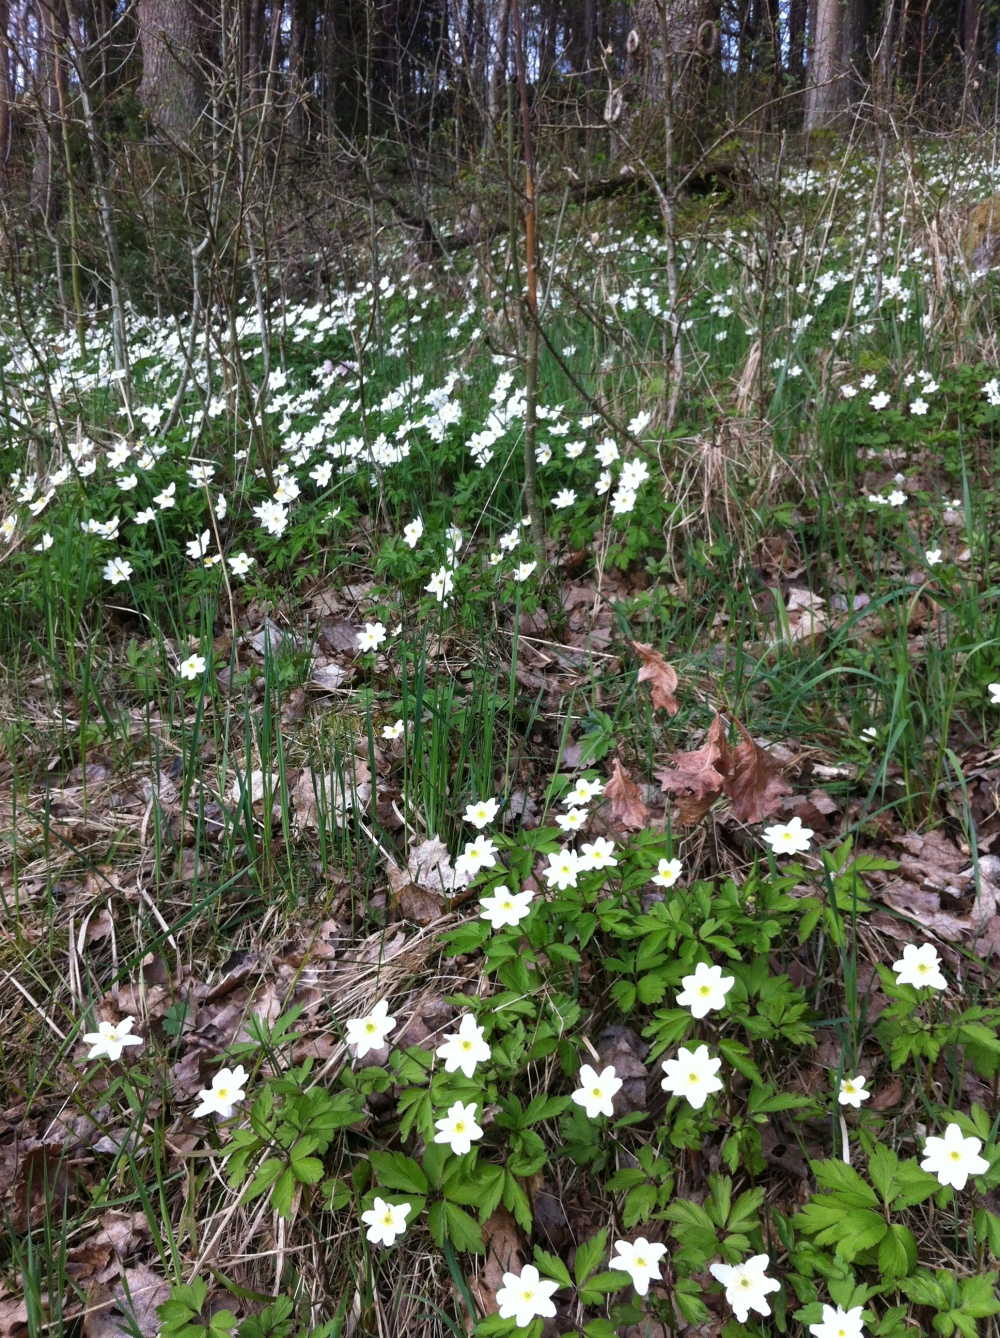 Wood Anemones carpeting woodland floors